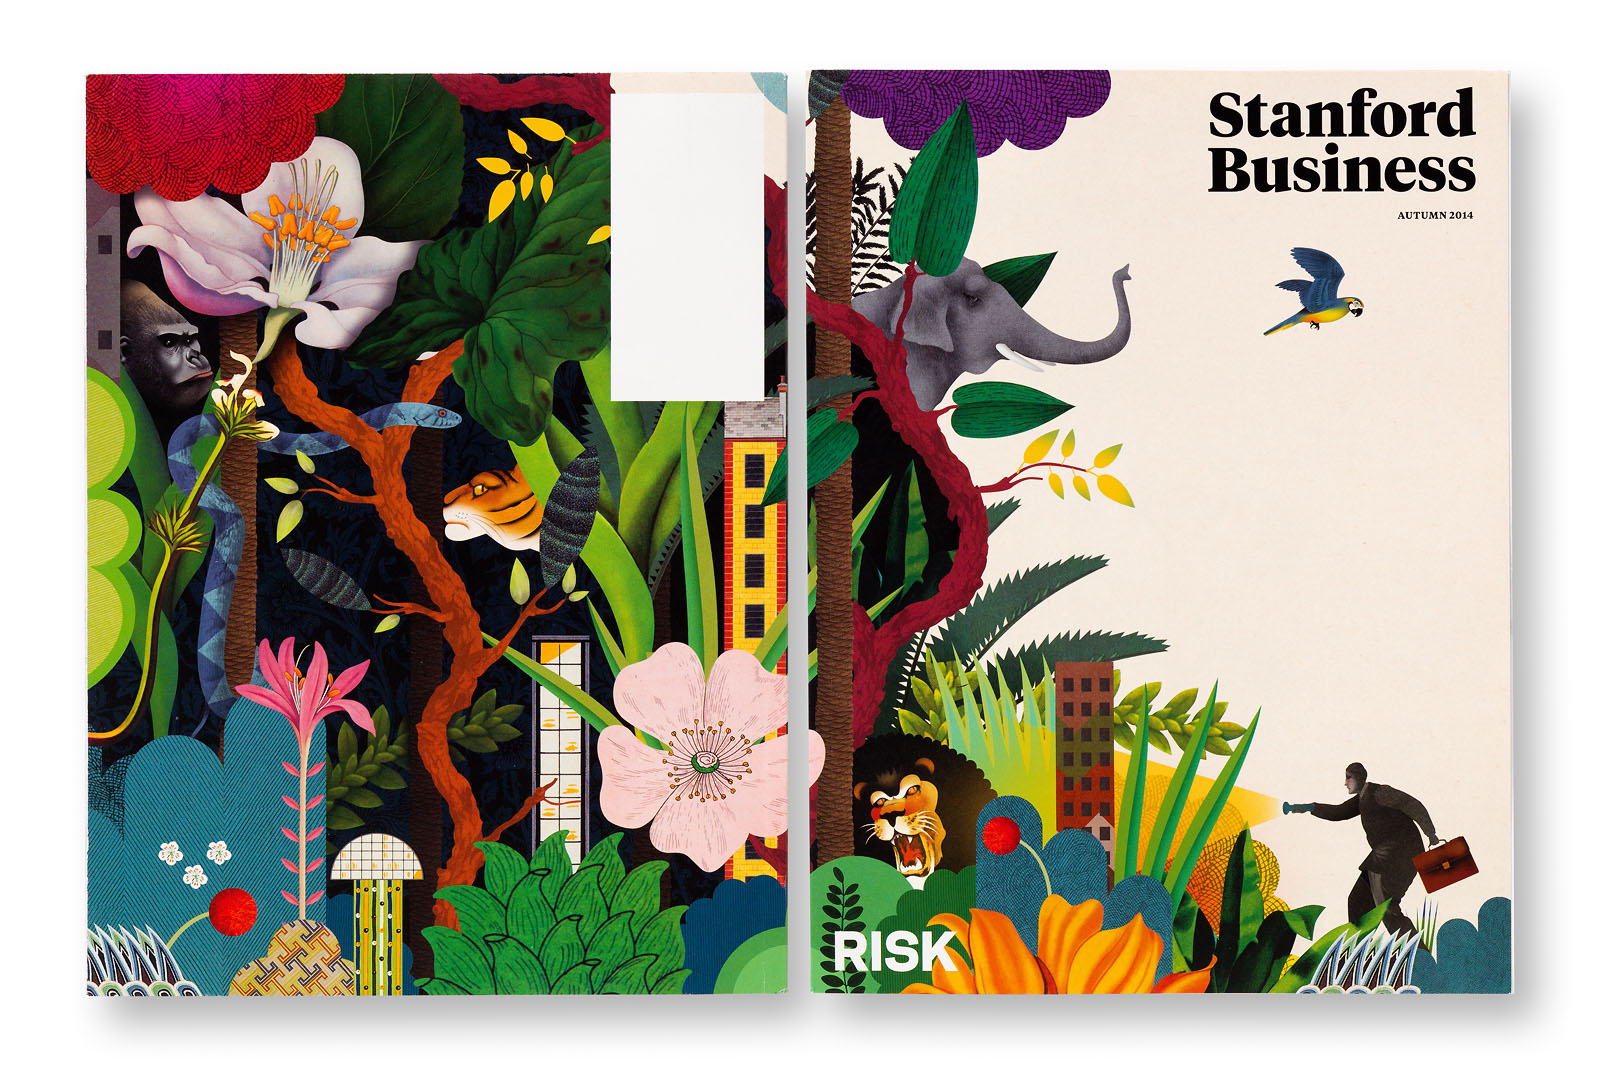 Learn the about the cover design of this issue of Stanford Business.